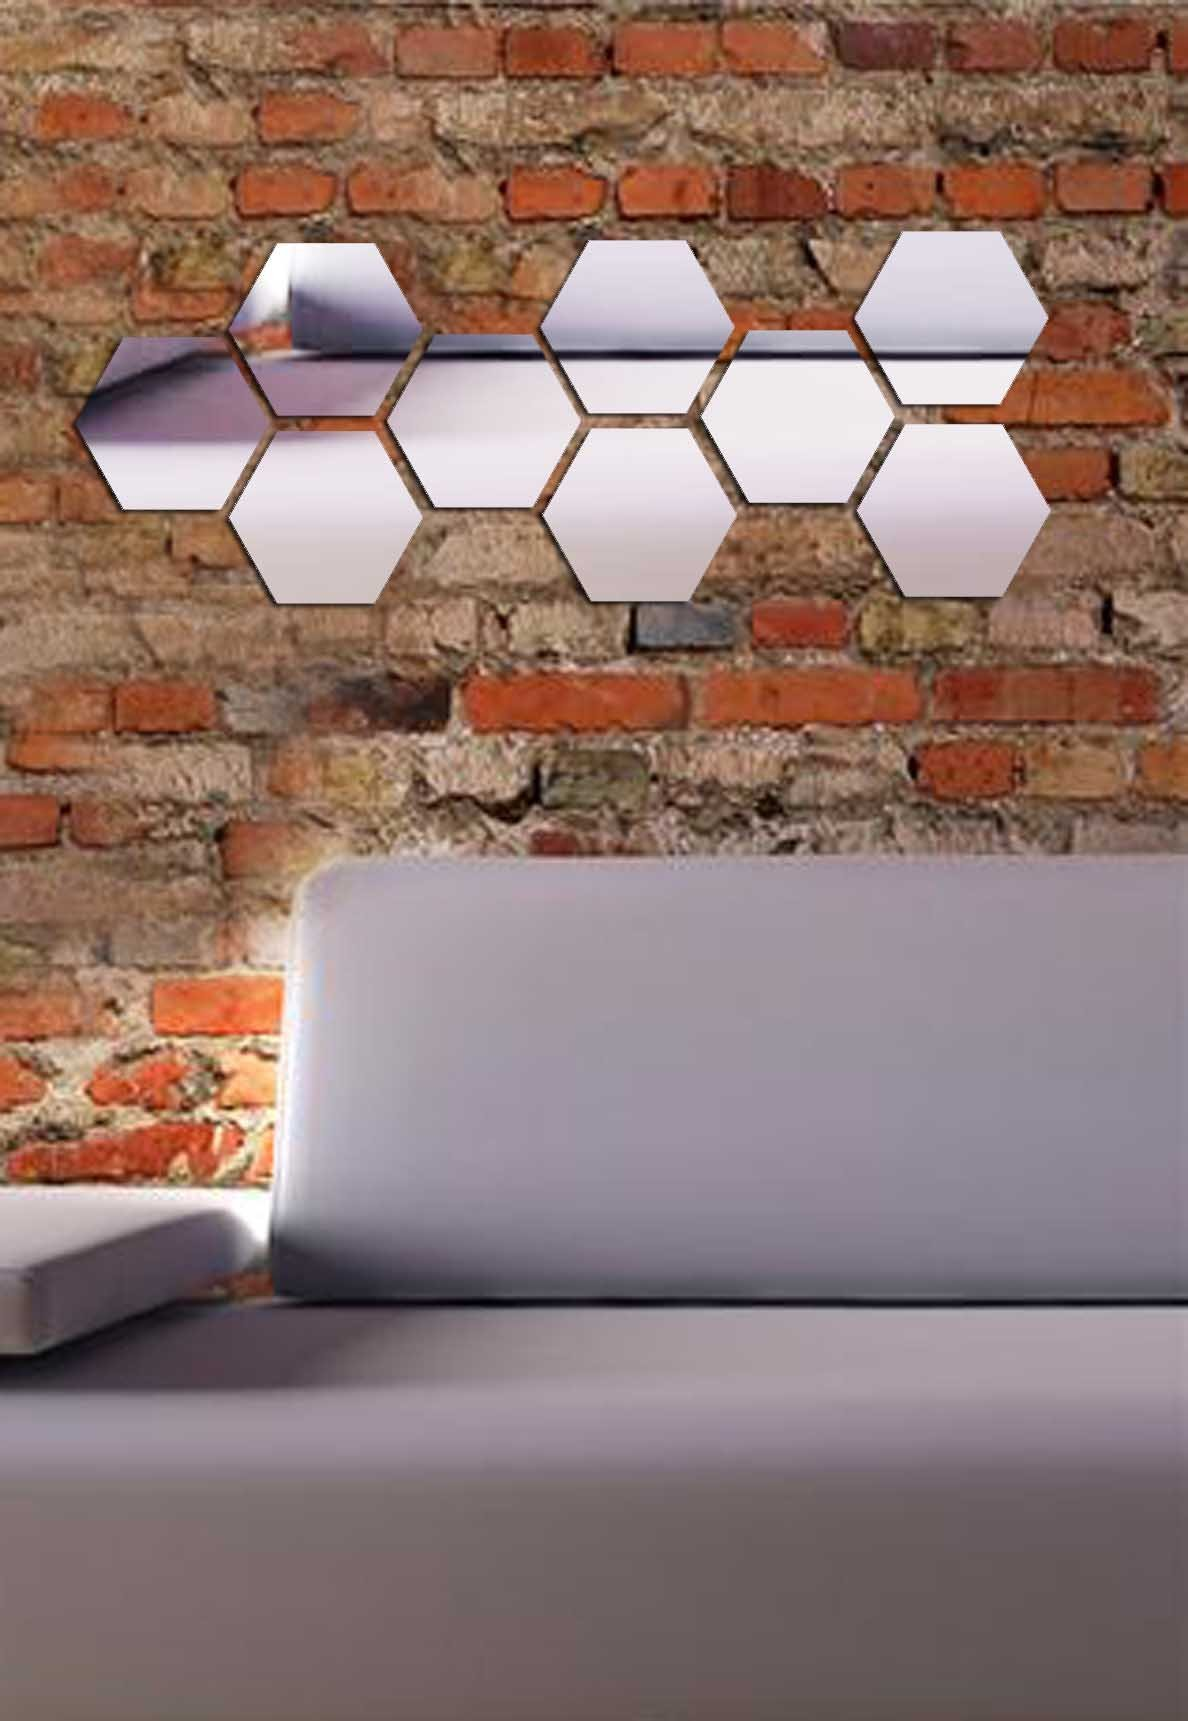 Decorative Removable Wall Sticker Mirror PLEXIGLASS (20.5'' x 7.9'') Number of Pieces 9 / Glass Modern Art Pattern Ornamental Design Beehive / Background Decoration Perfect Design For Home, Office, Room